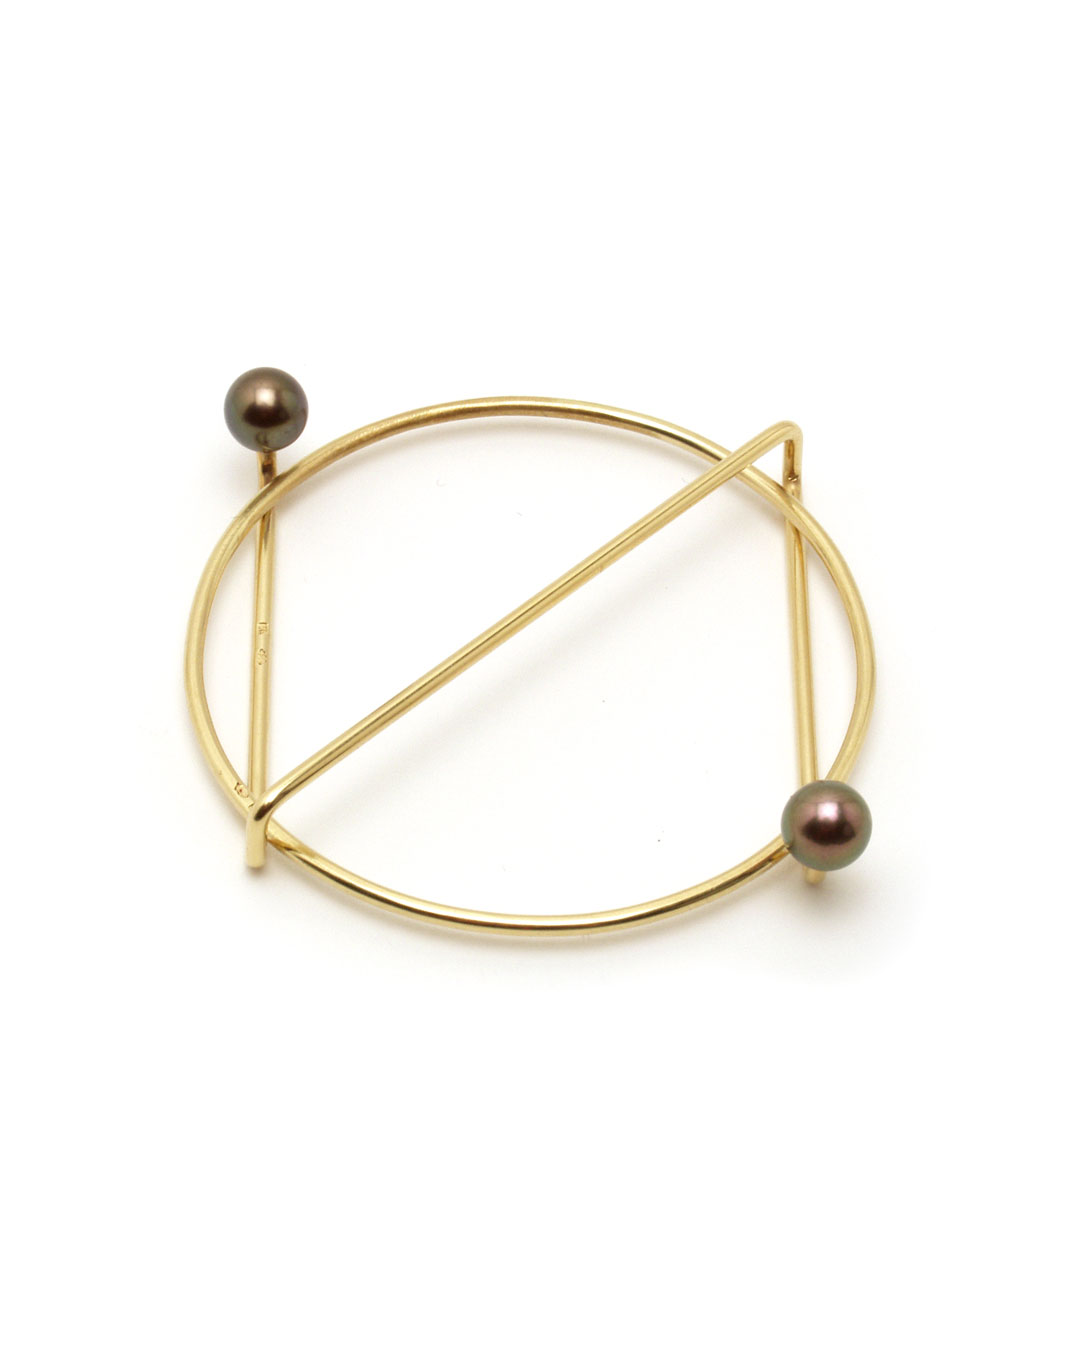 Herman Hermsen, untitled, 1989, brooch; 14ct yellow gold, pearls, 60 x 50 x 10 mm, €1275